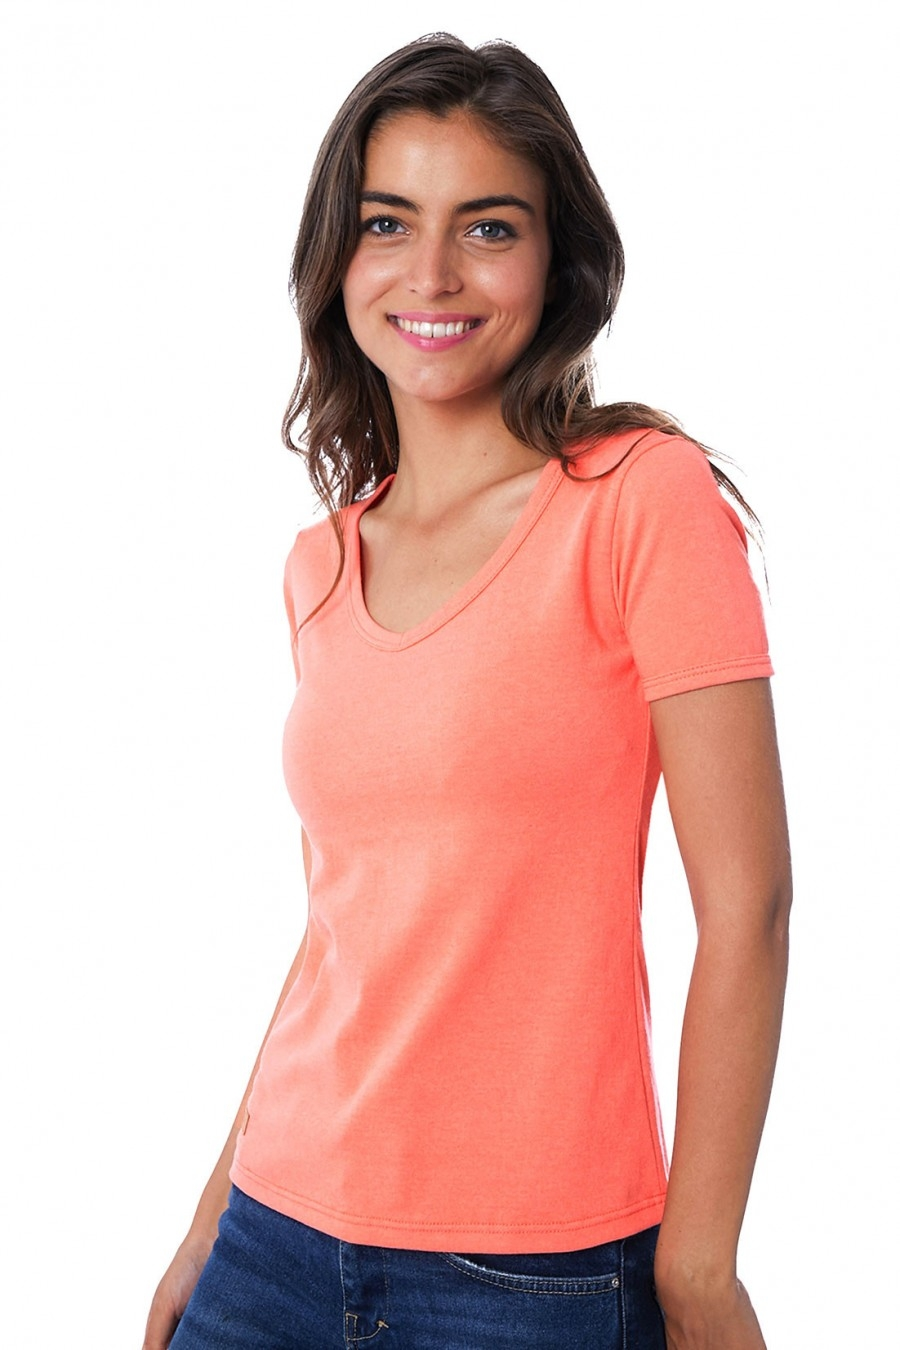 T-SHIRT FEMME MANCHE COURTE COL V CORAIL - Made in France & 100% Recyclé